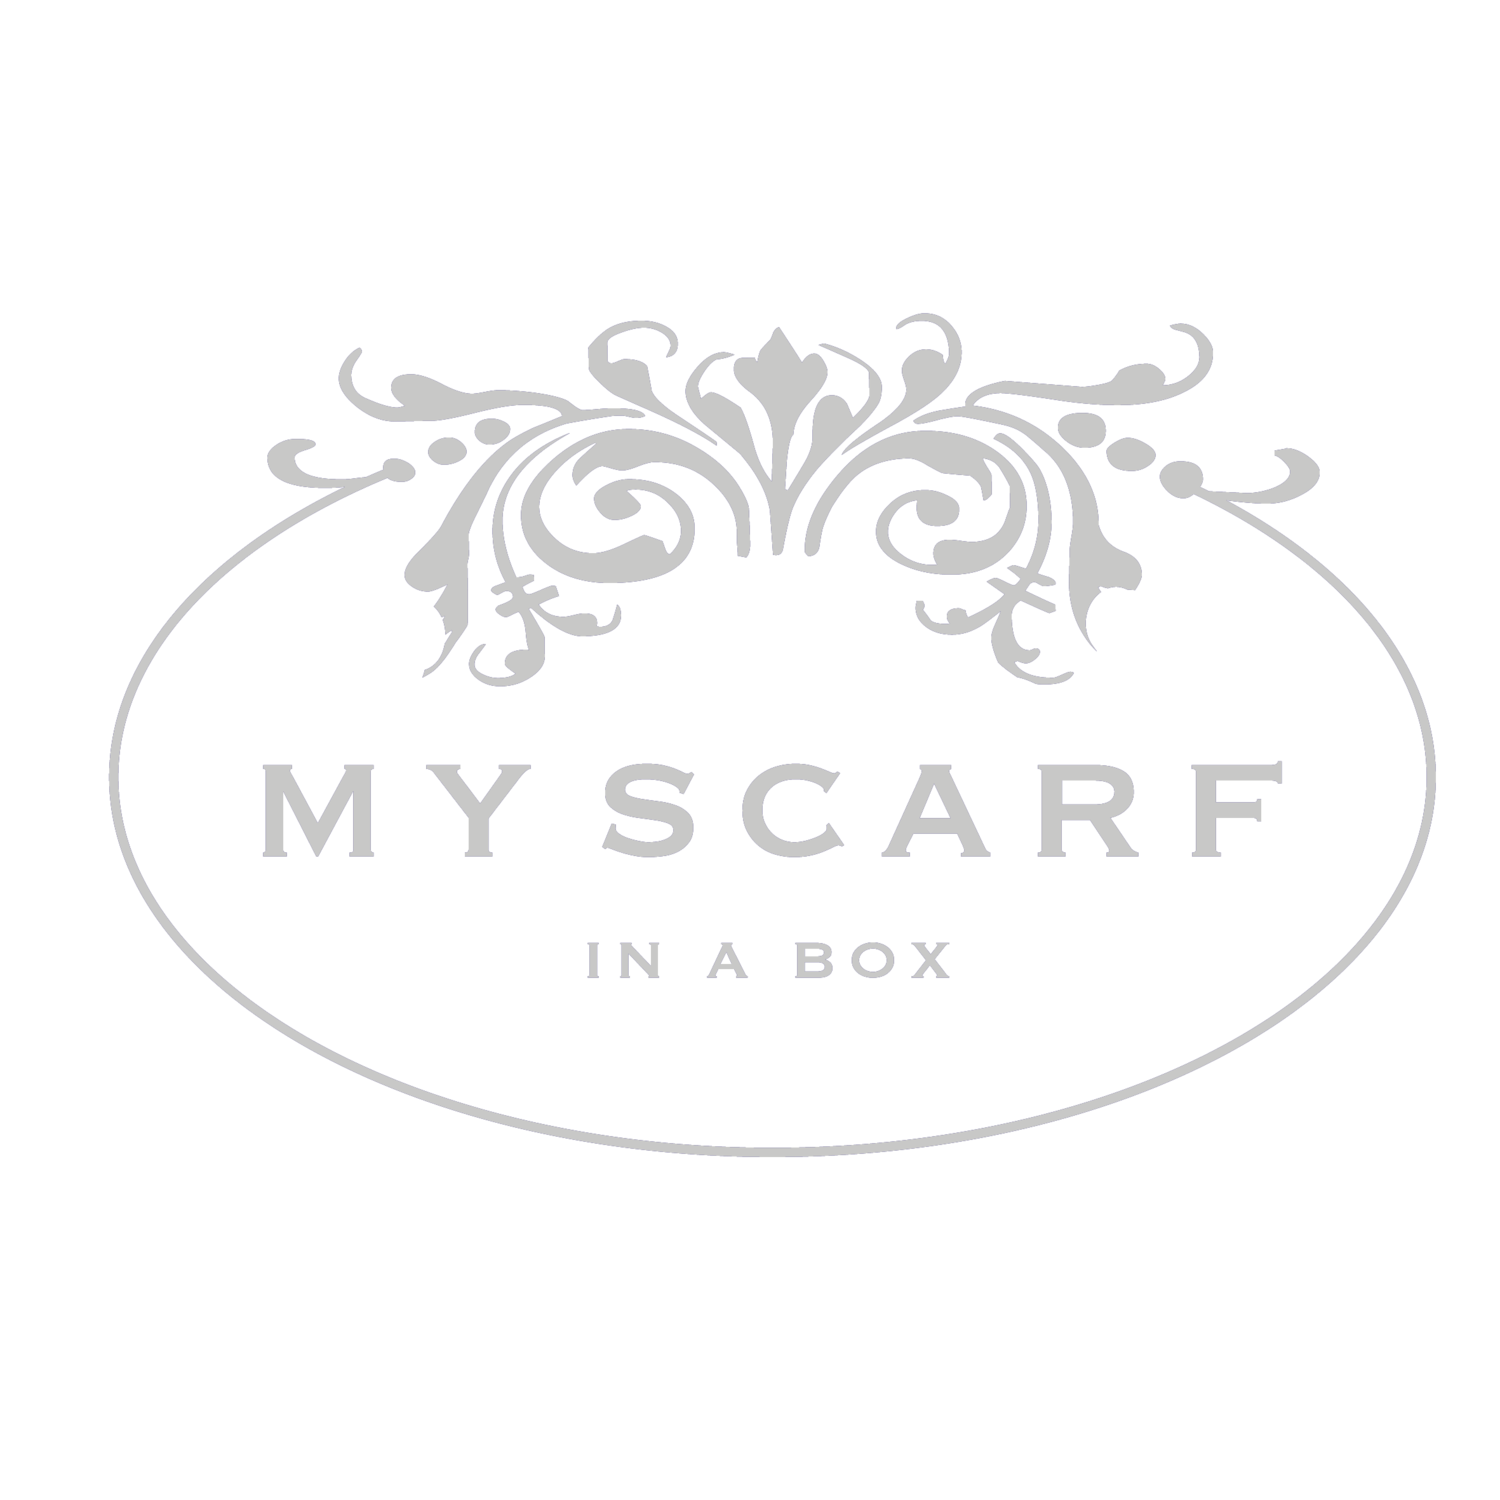 My Scarf in a Box™